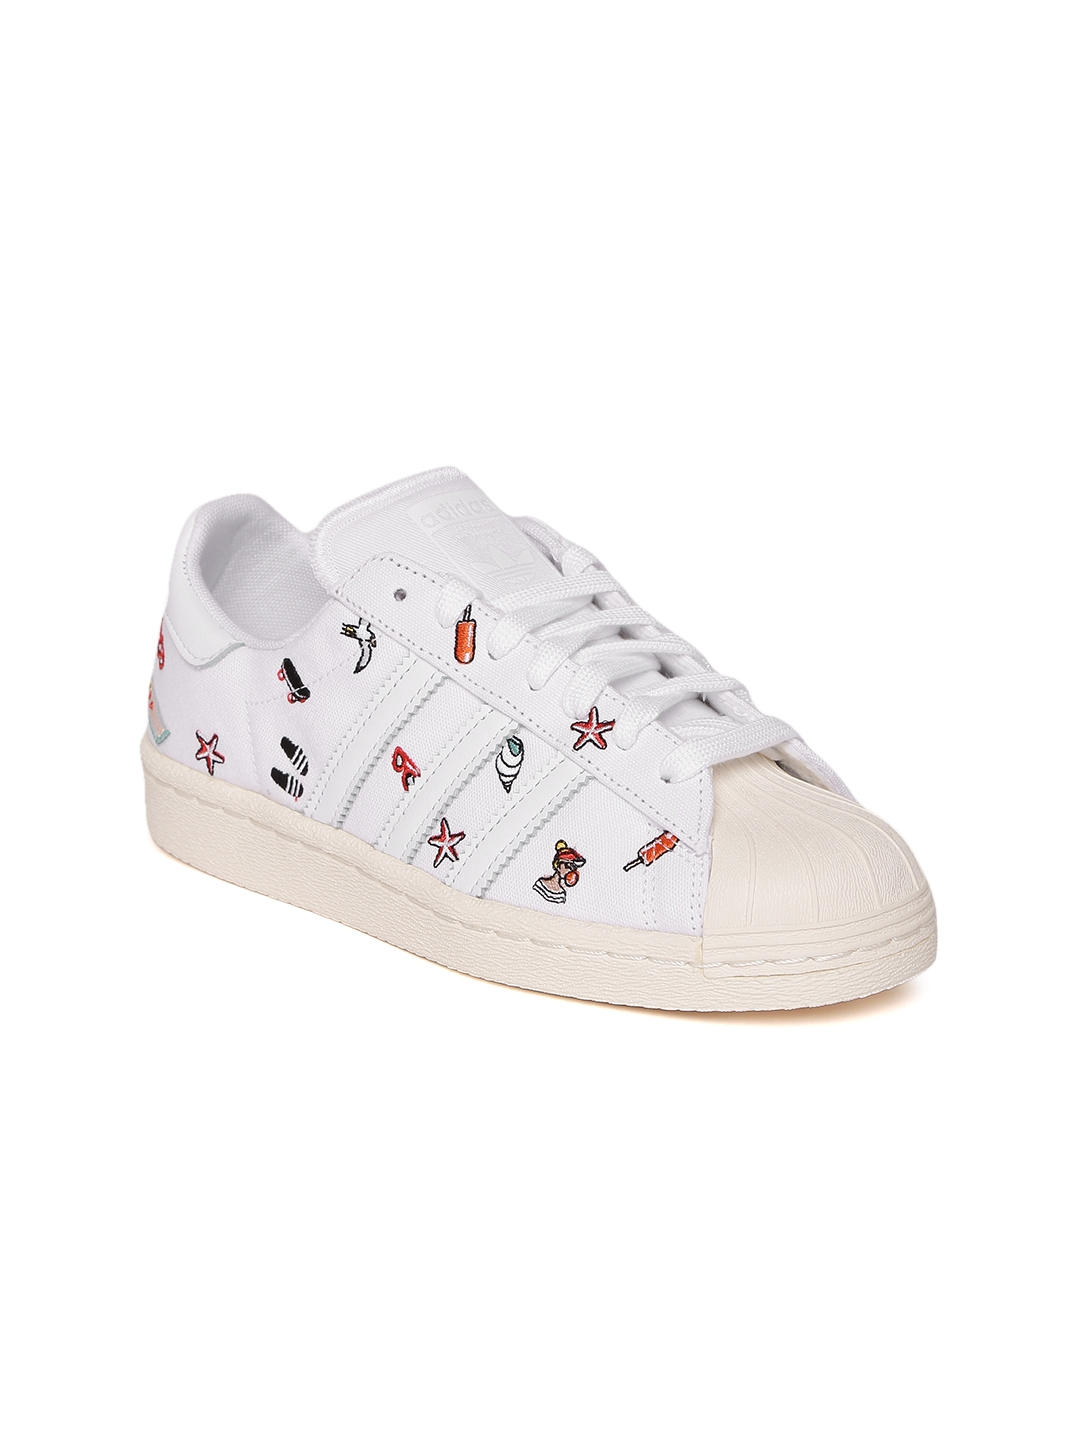 7e7942d97cf7 Buy ADIDAS Originals Women White Superstar 80S Embroidered Sneakers ...